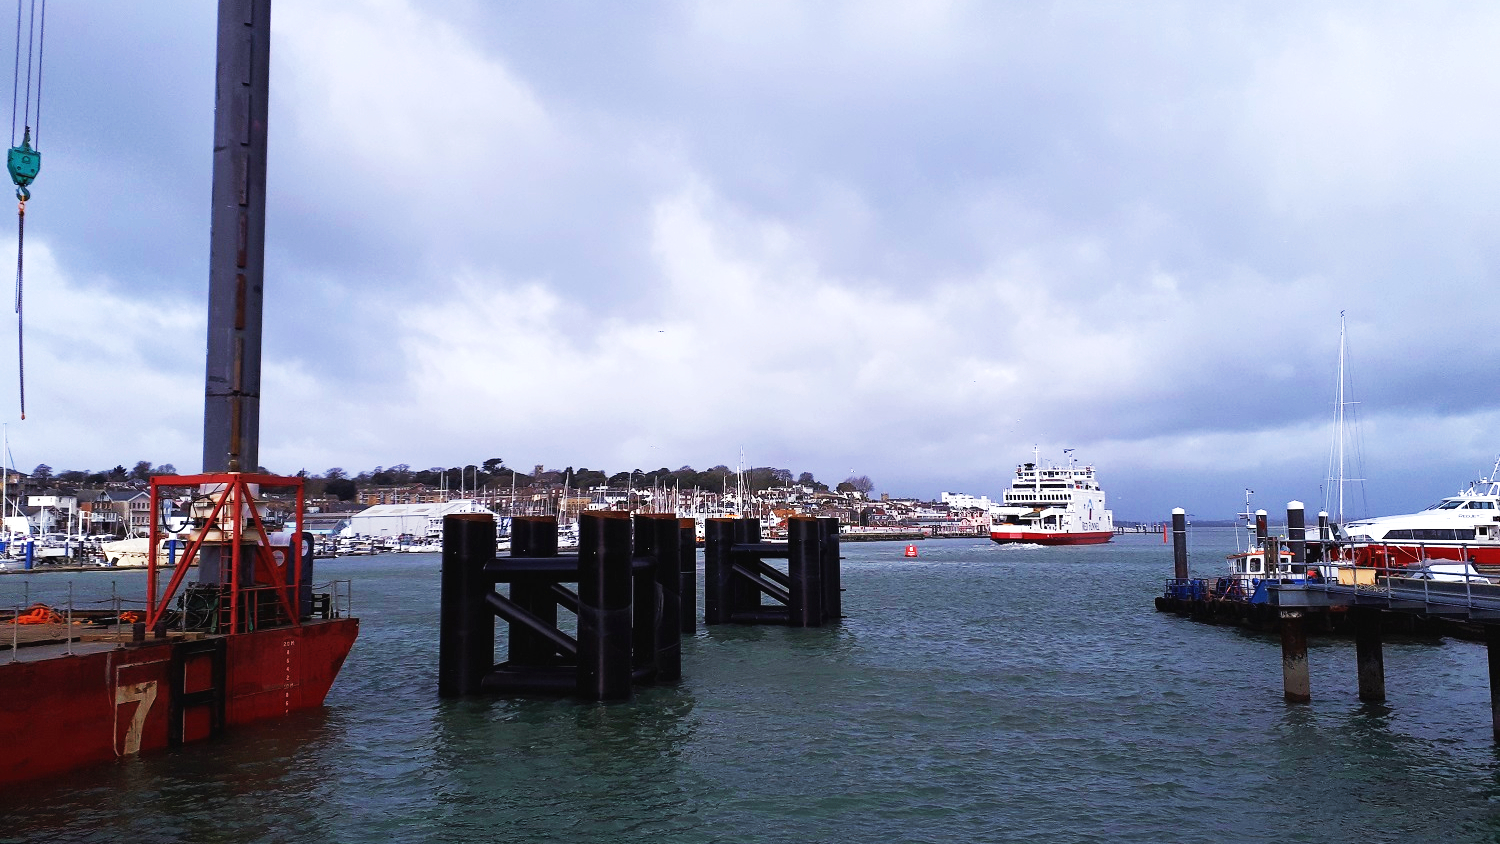 The lay-by berth nears completion with all piles and jacket structures installed. In the distance a Red Funnel passenger ferry leaves East Cowes for Southampton. March 2019 © Ramboll